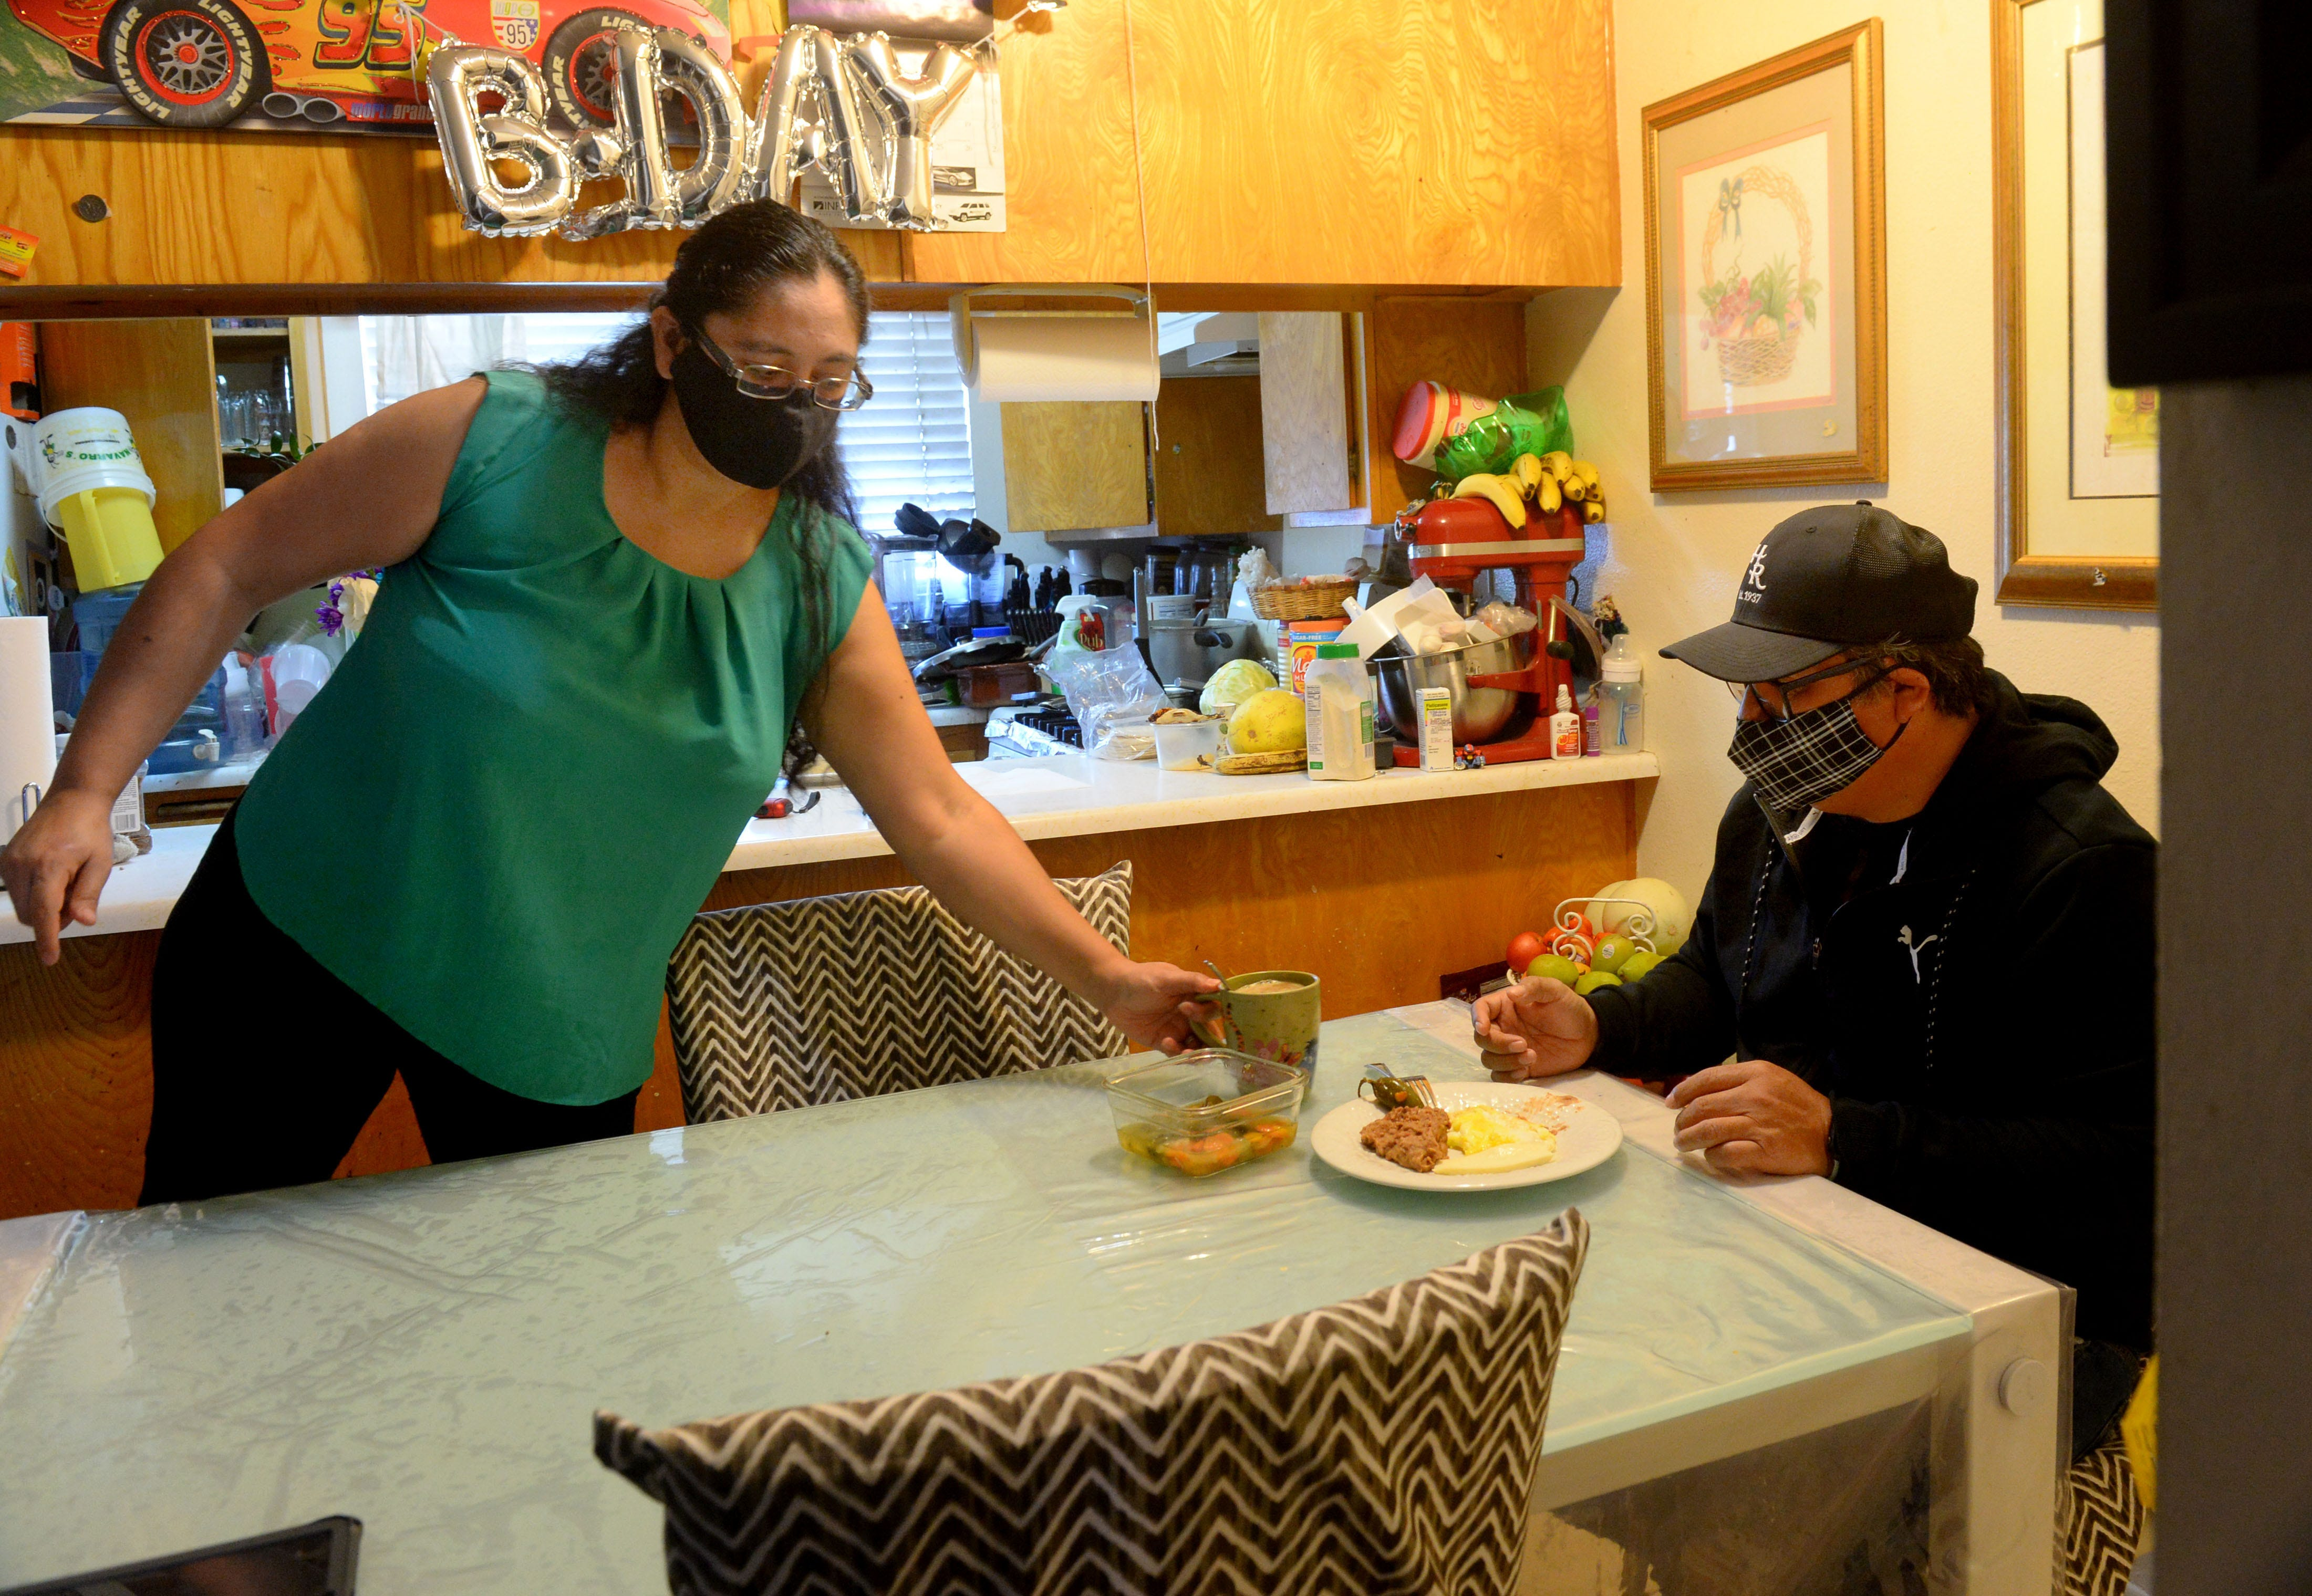 Jessica Vargas, left, brings breakfast to her husband Jorge Ruiz on Monday, Feb. 22, 2021. They have two children and are heavily involved in their education.